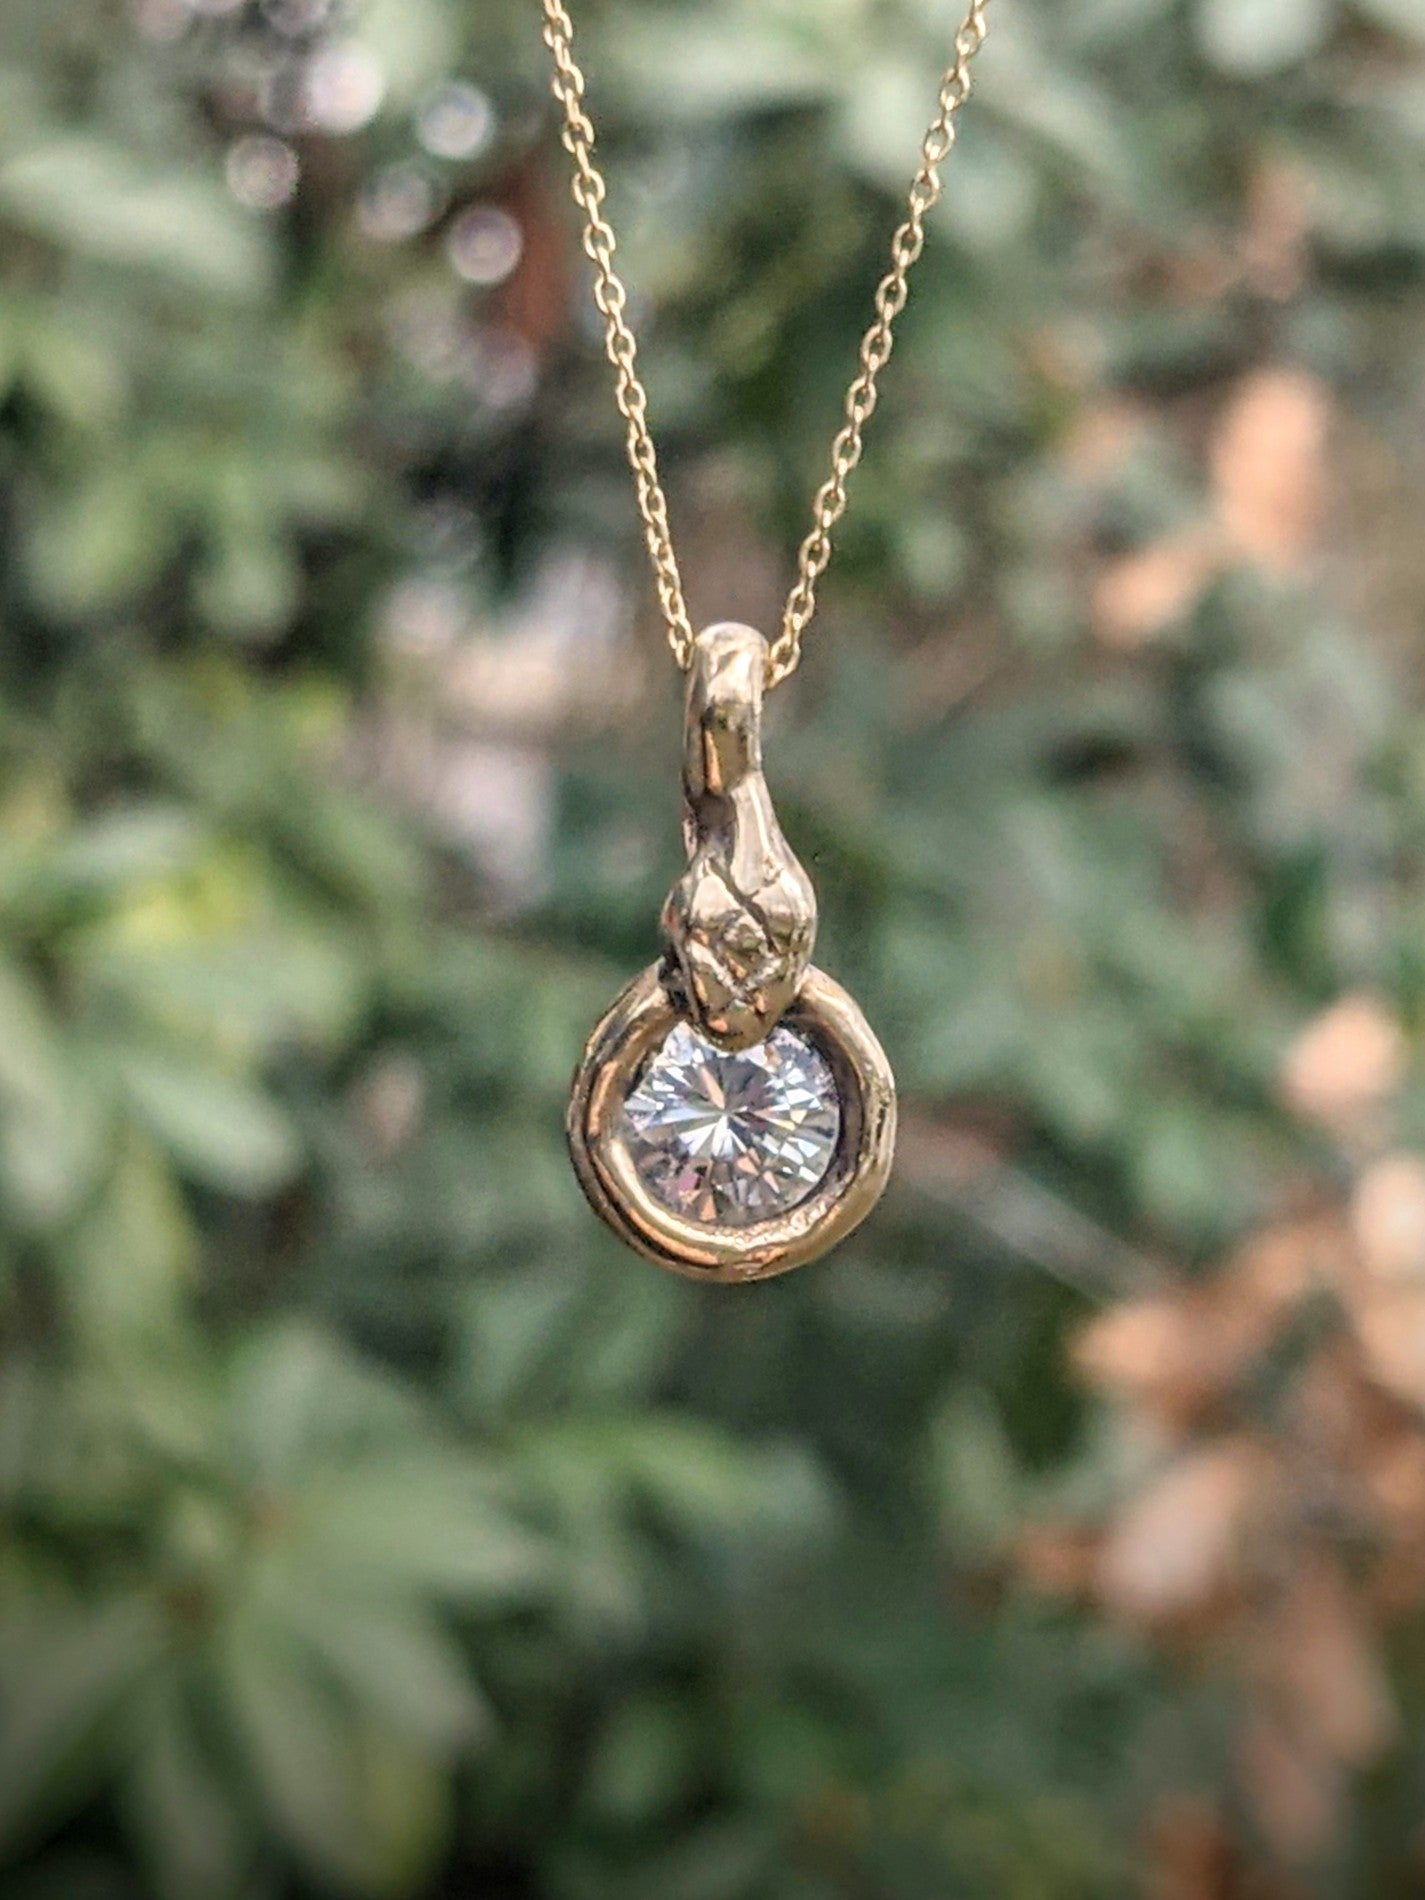 14k Gold Serpent's Egg Necklace, Silver Moissanite